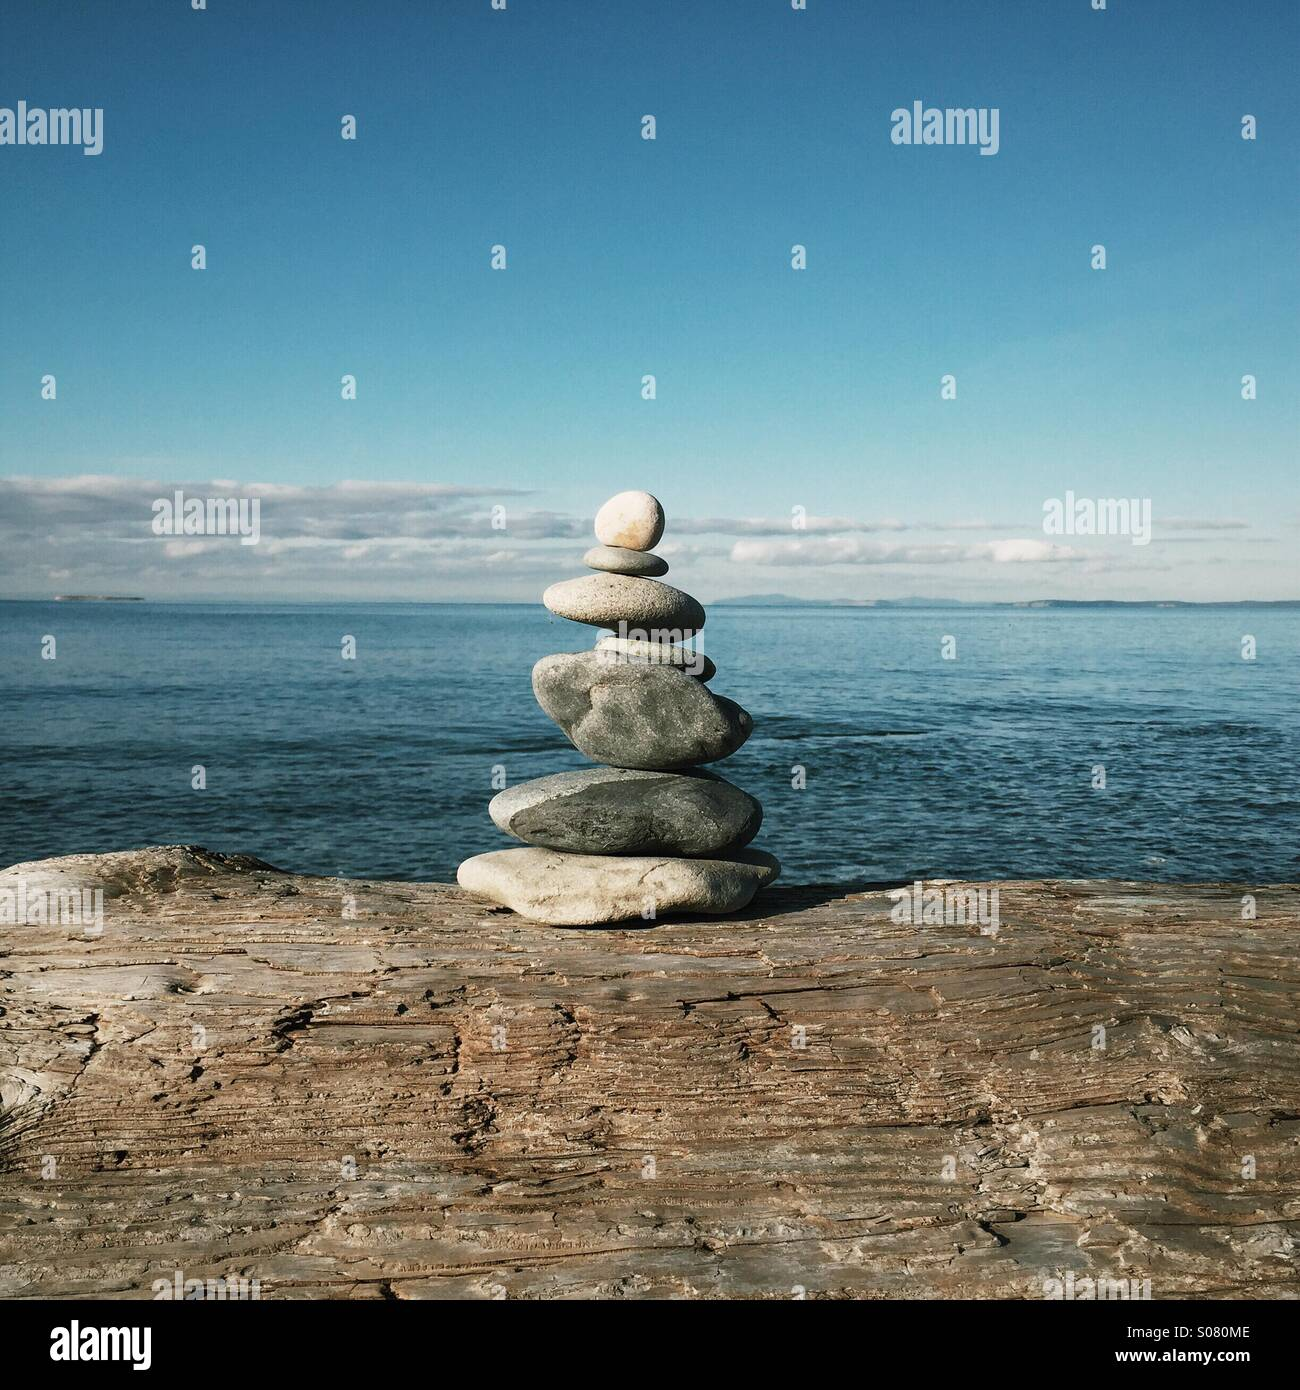 Cairn of stacked or balanced stones sitting on driftwood at the beach. - Stock Image